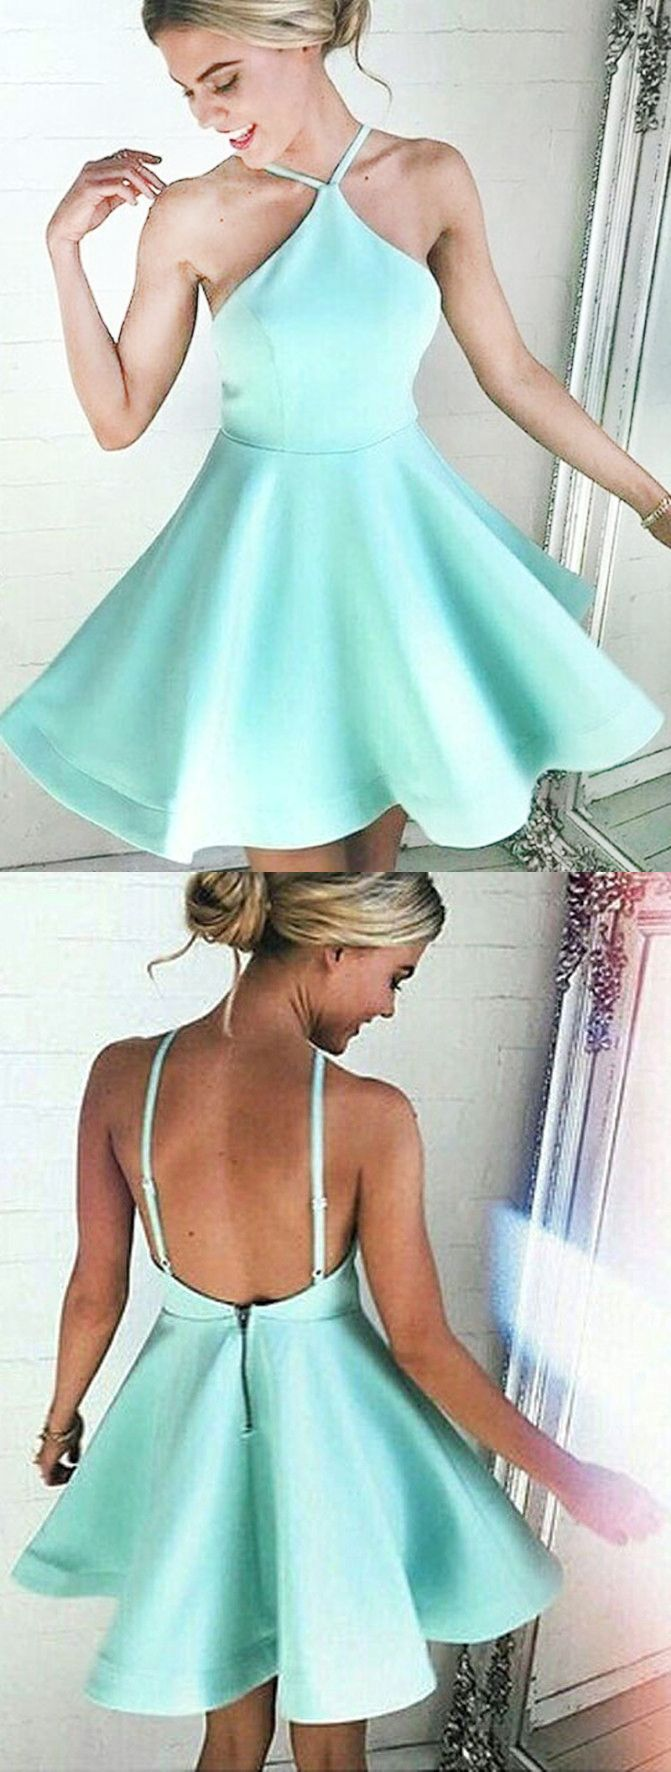 halter homecoming dresses, mint homecoming dresses, backless homecoming dresses, short homecoming dresses, homecoming dresses with ruched